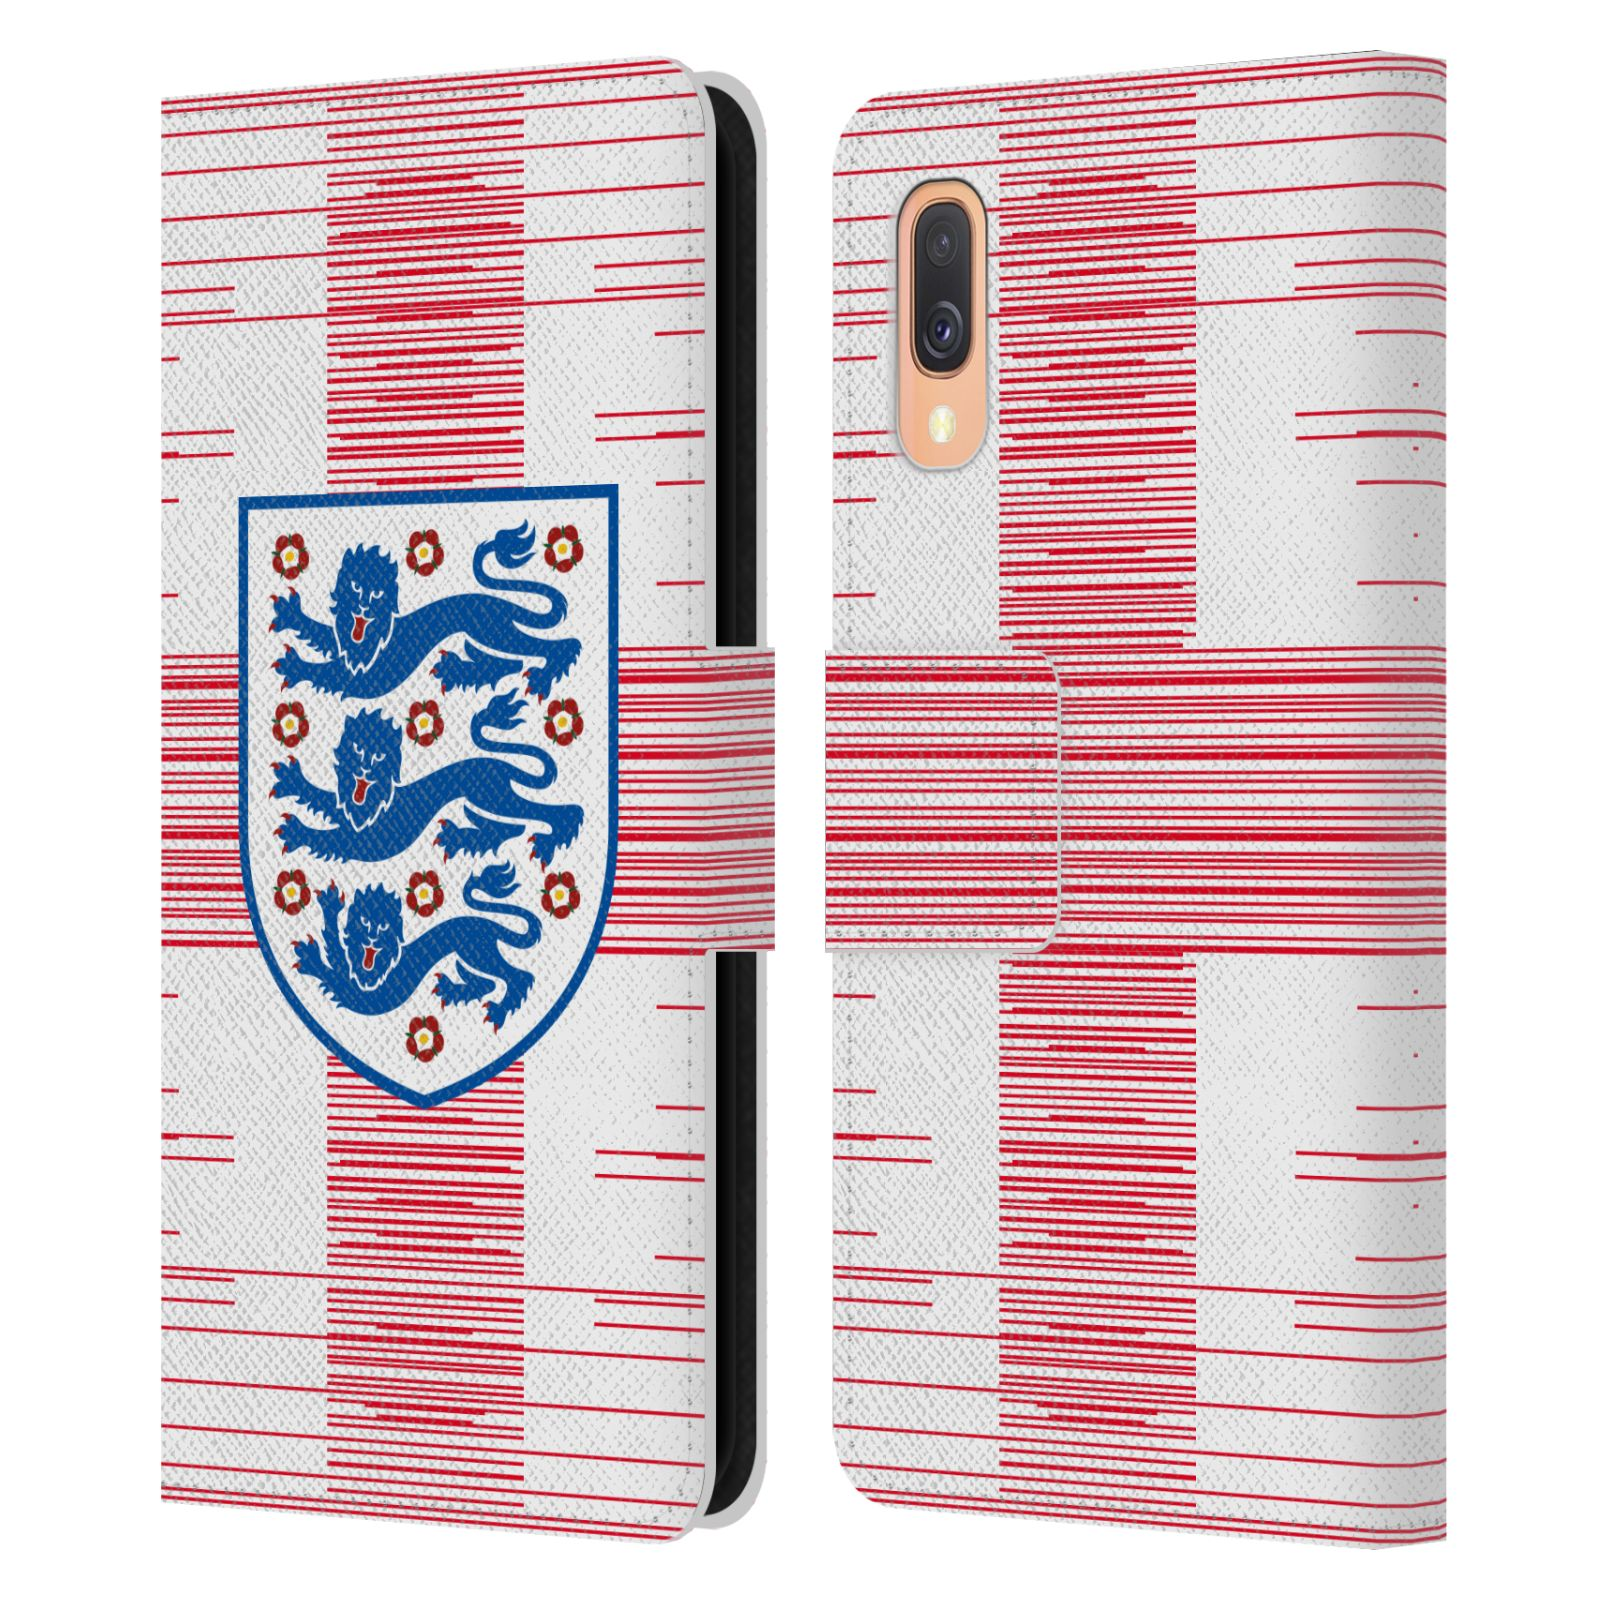 Official England National Football Team 2018/19 Crest Flag 2 Leather Book Wallet Case For Samsung Galaxy A40 (2019)